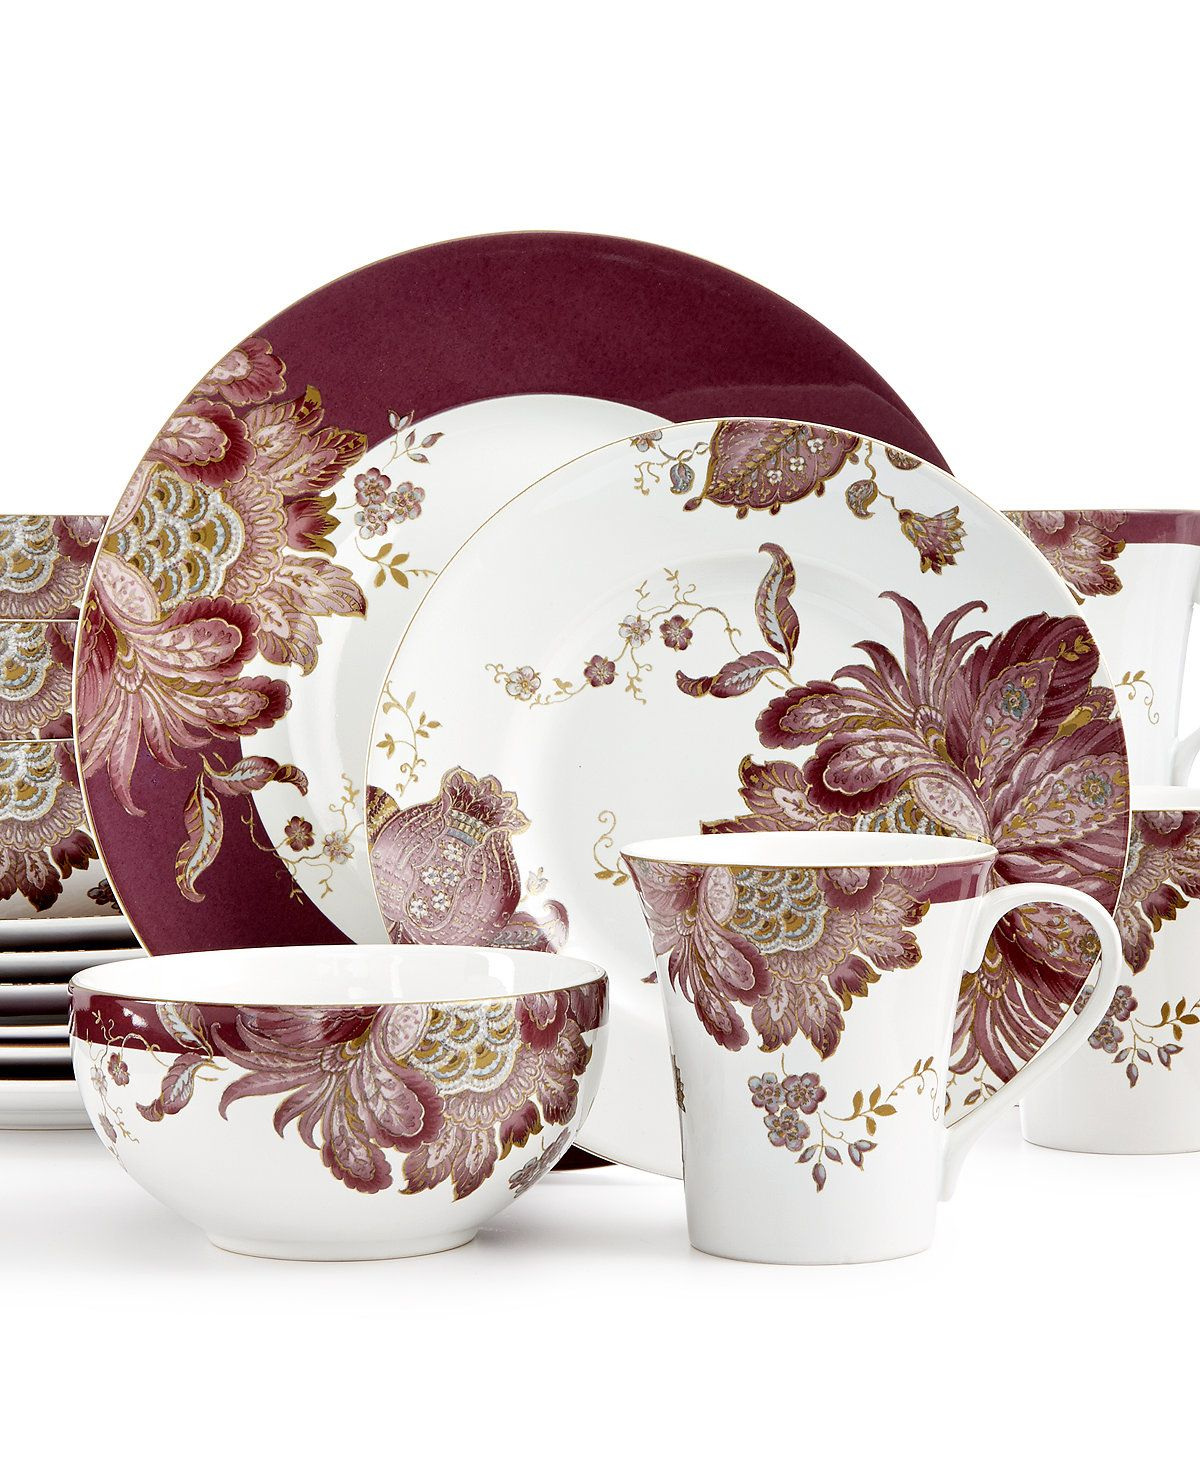 222 Fifth Eliza Plum 16-Pc. Set, Service for 4 | Dinnerware and Shopping